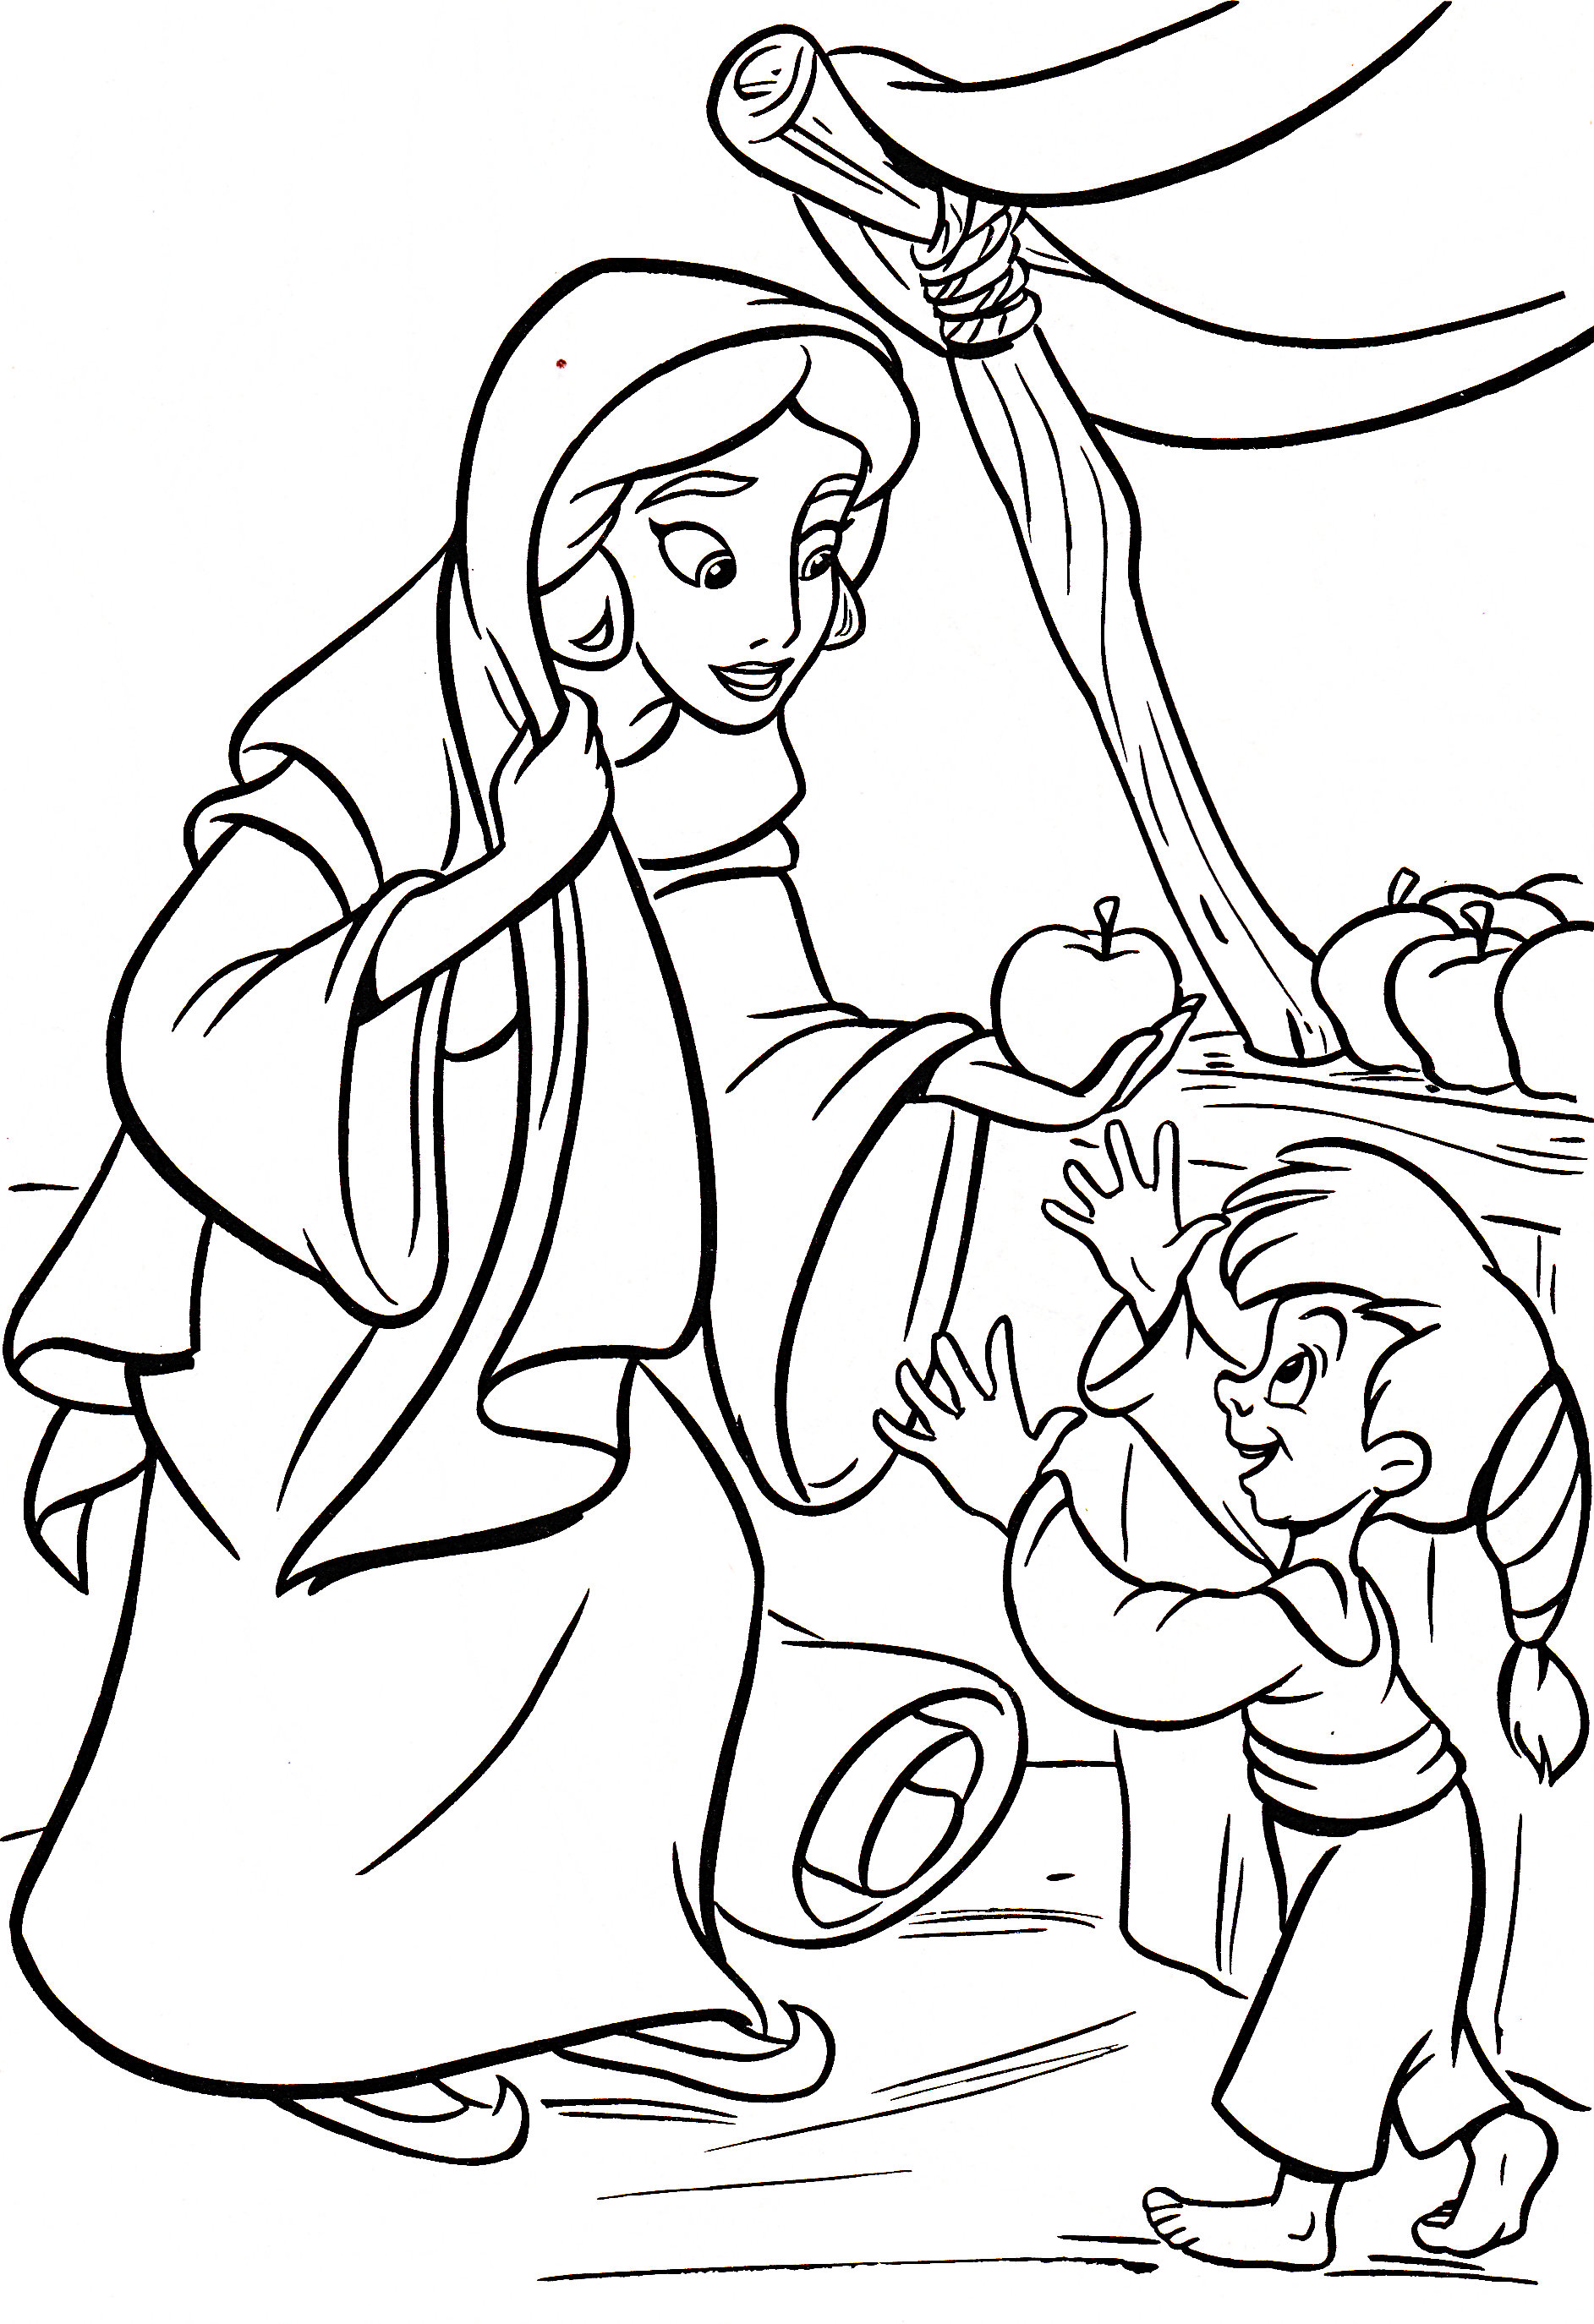 Colouring Pages Disney Jasmine : Walt disney coloring pages princess jasmine